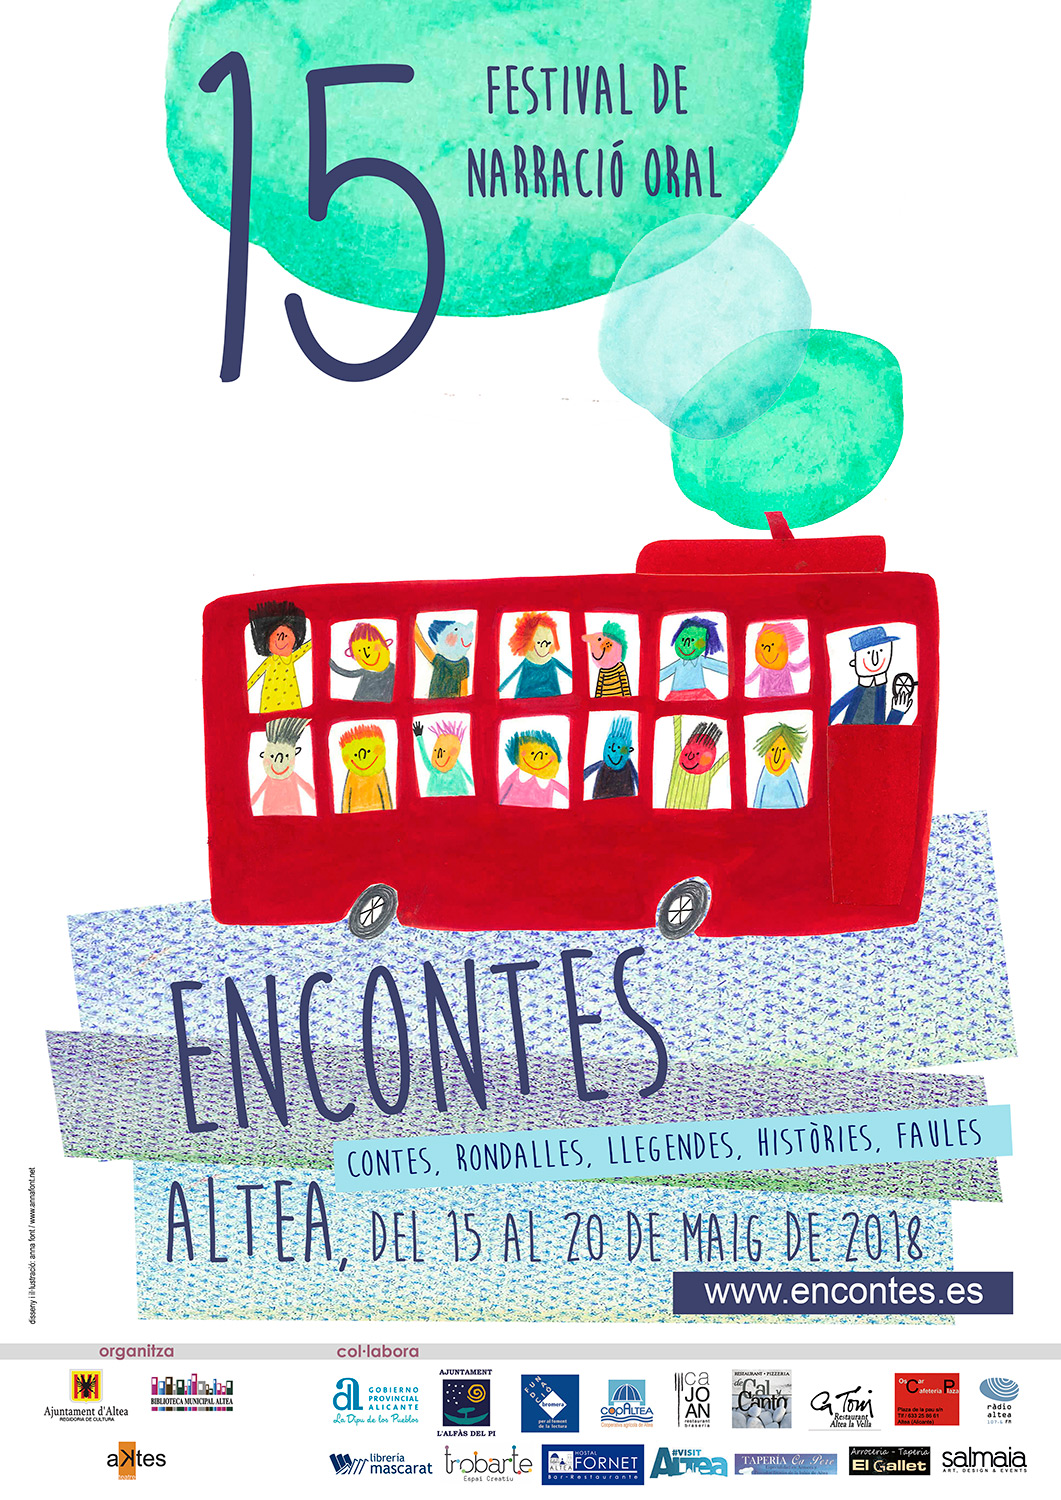 Encontes Altea